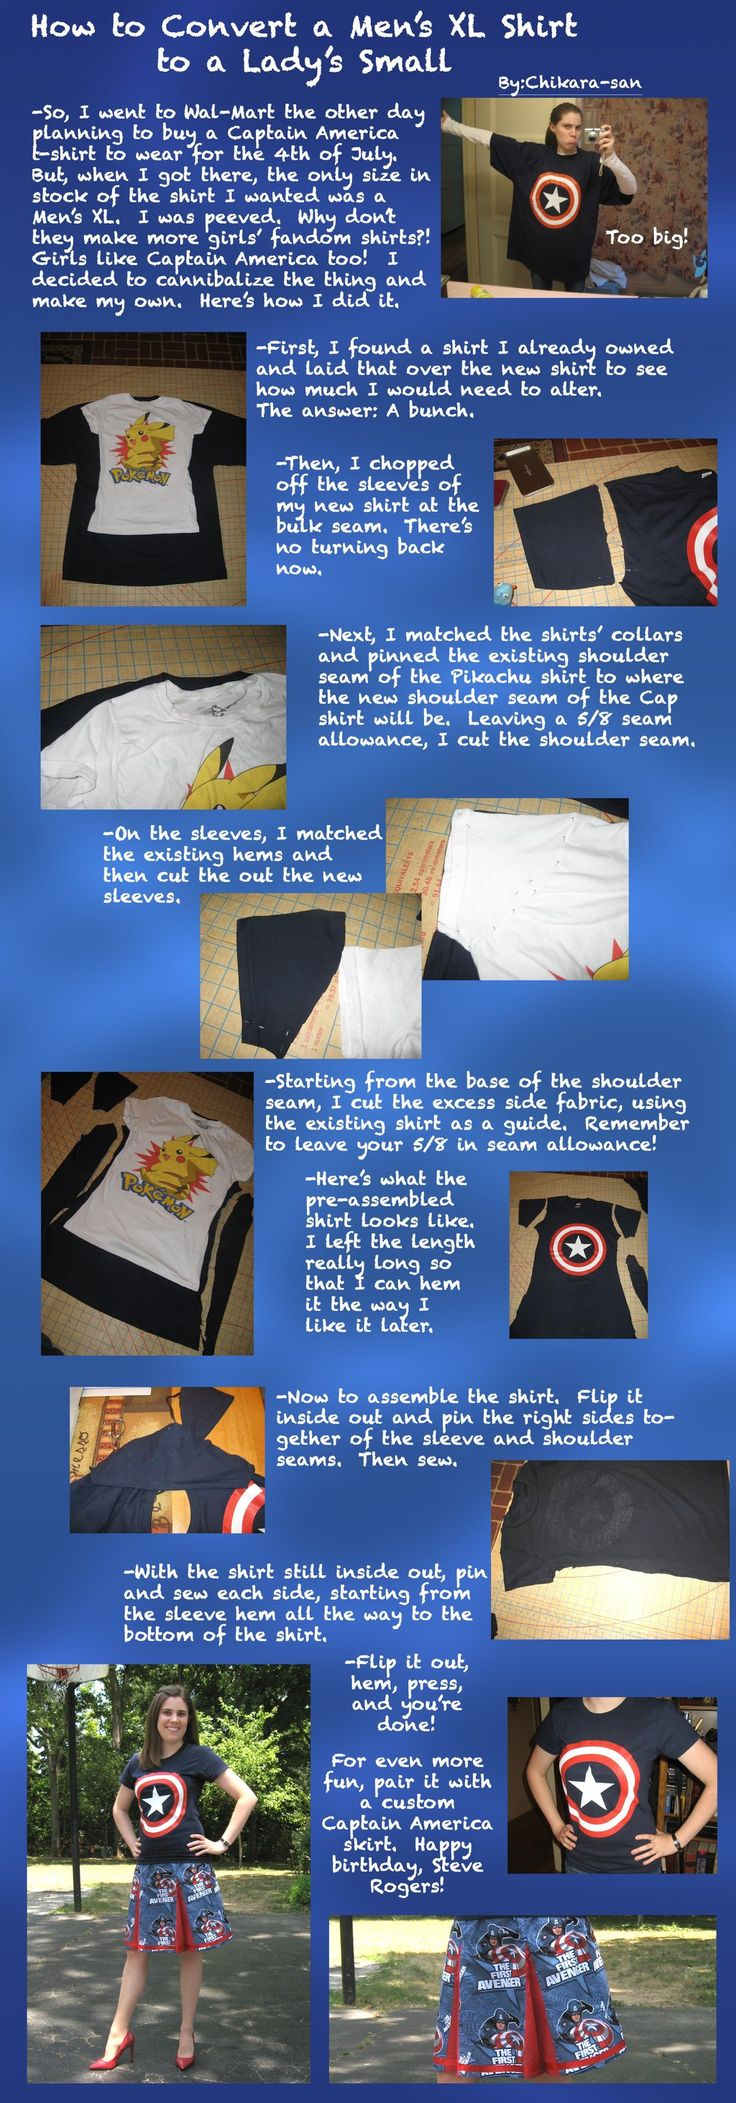 Tutorial: Altering a Man's T-Shirt to a Lady's